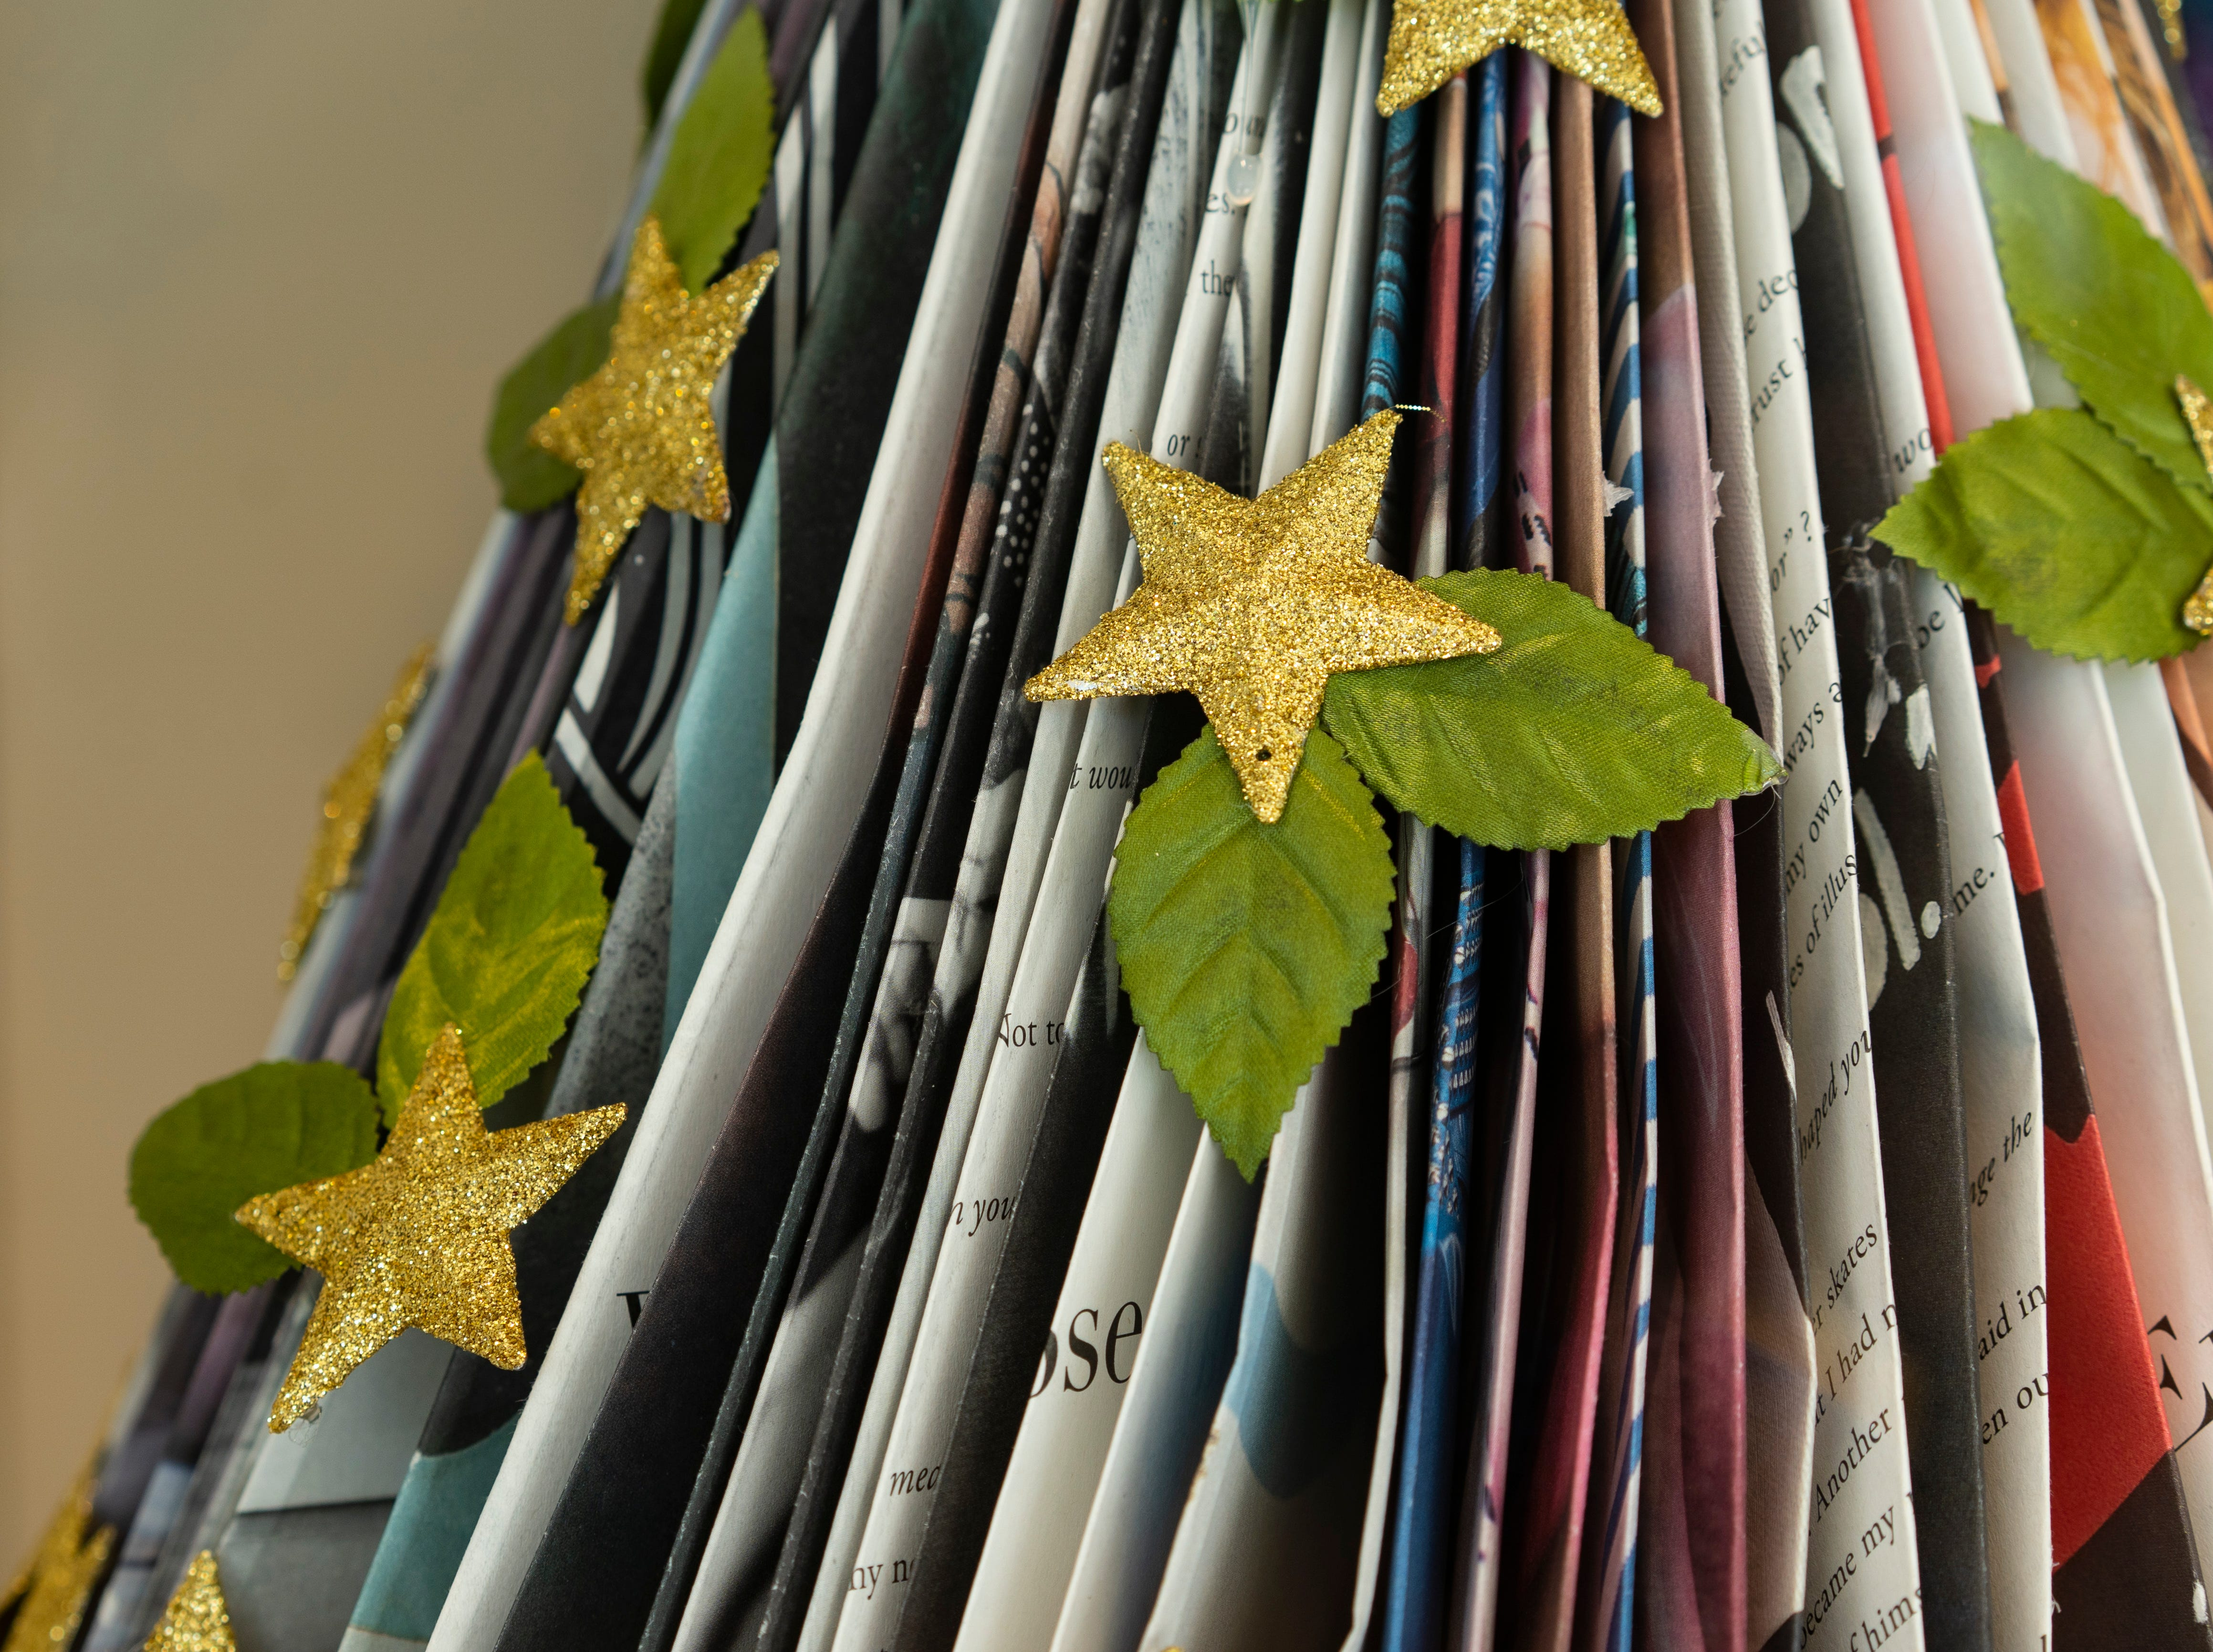 Talbots clothing store donated a paper folded Christmas tree with stars and stacks of book ornaments to raise funds for Champions For Learning.   Waterside Shops is hosting A Season of Giving, in which bids are placed on 10 elegantly decorated Christmas trees displayed at stores in the center, each in support of a nonprofit in the Naples area. The bidding and display close on Thursday, Dec. 6, 2018.